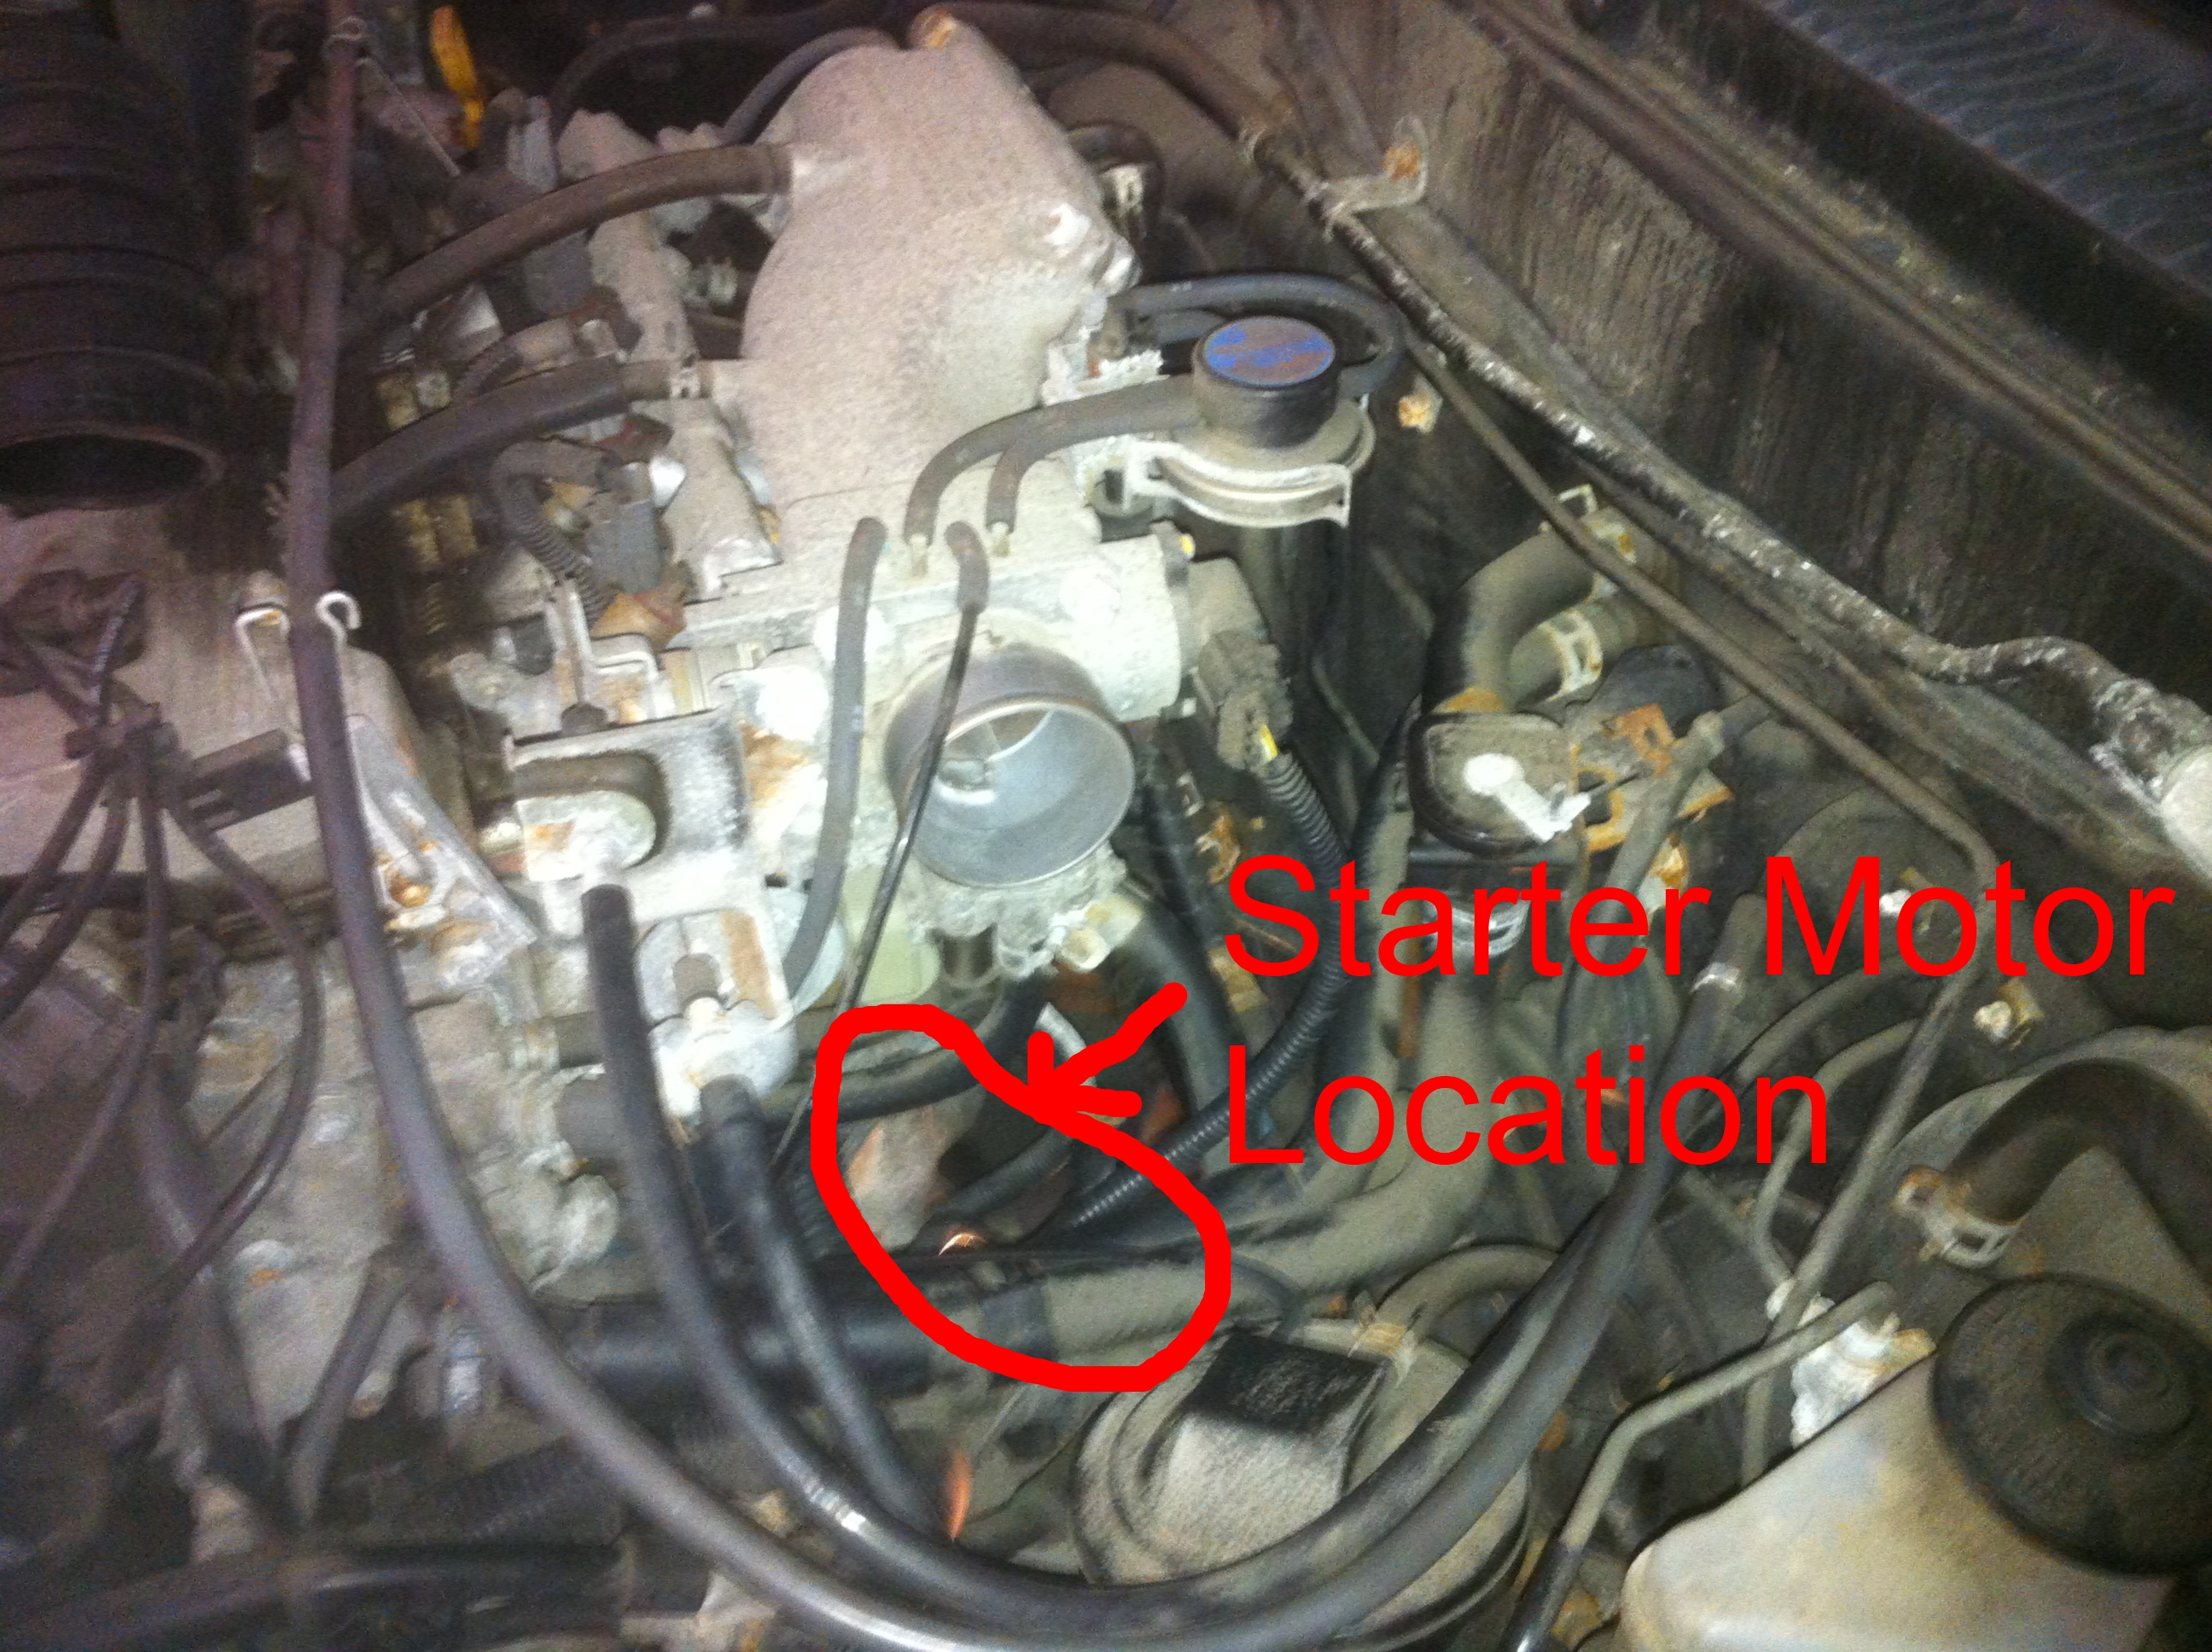 replacing starter motor in 1996 toyota corolla kruckenberg bloggings